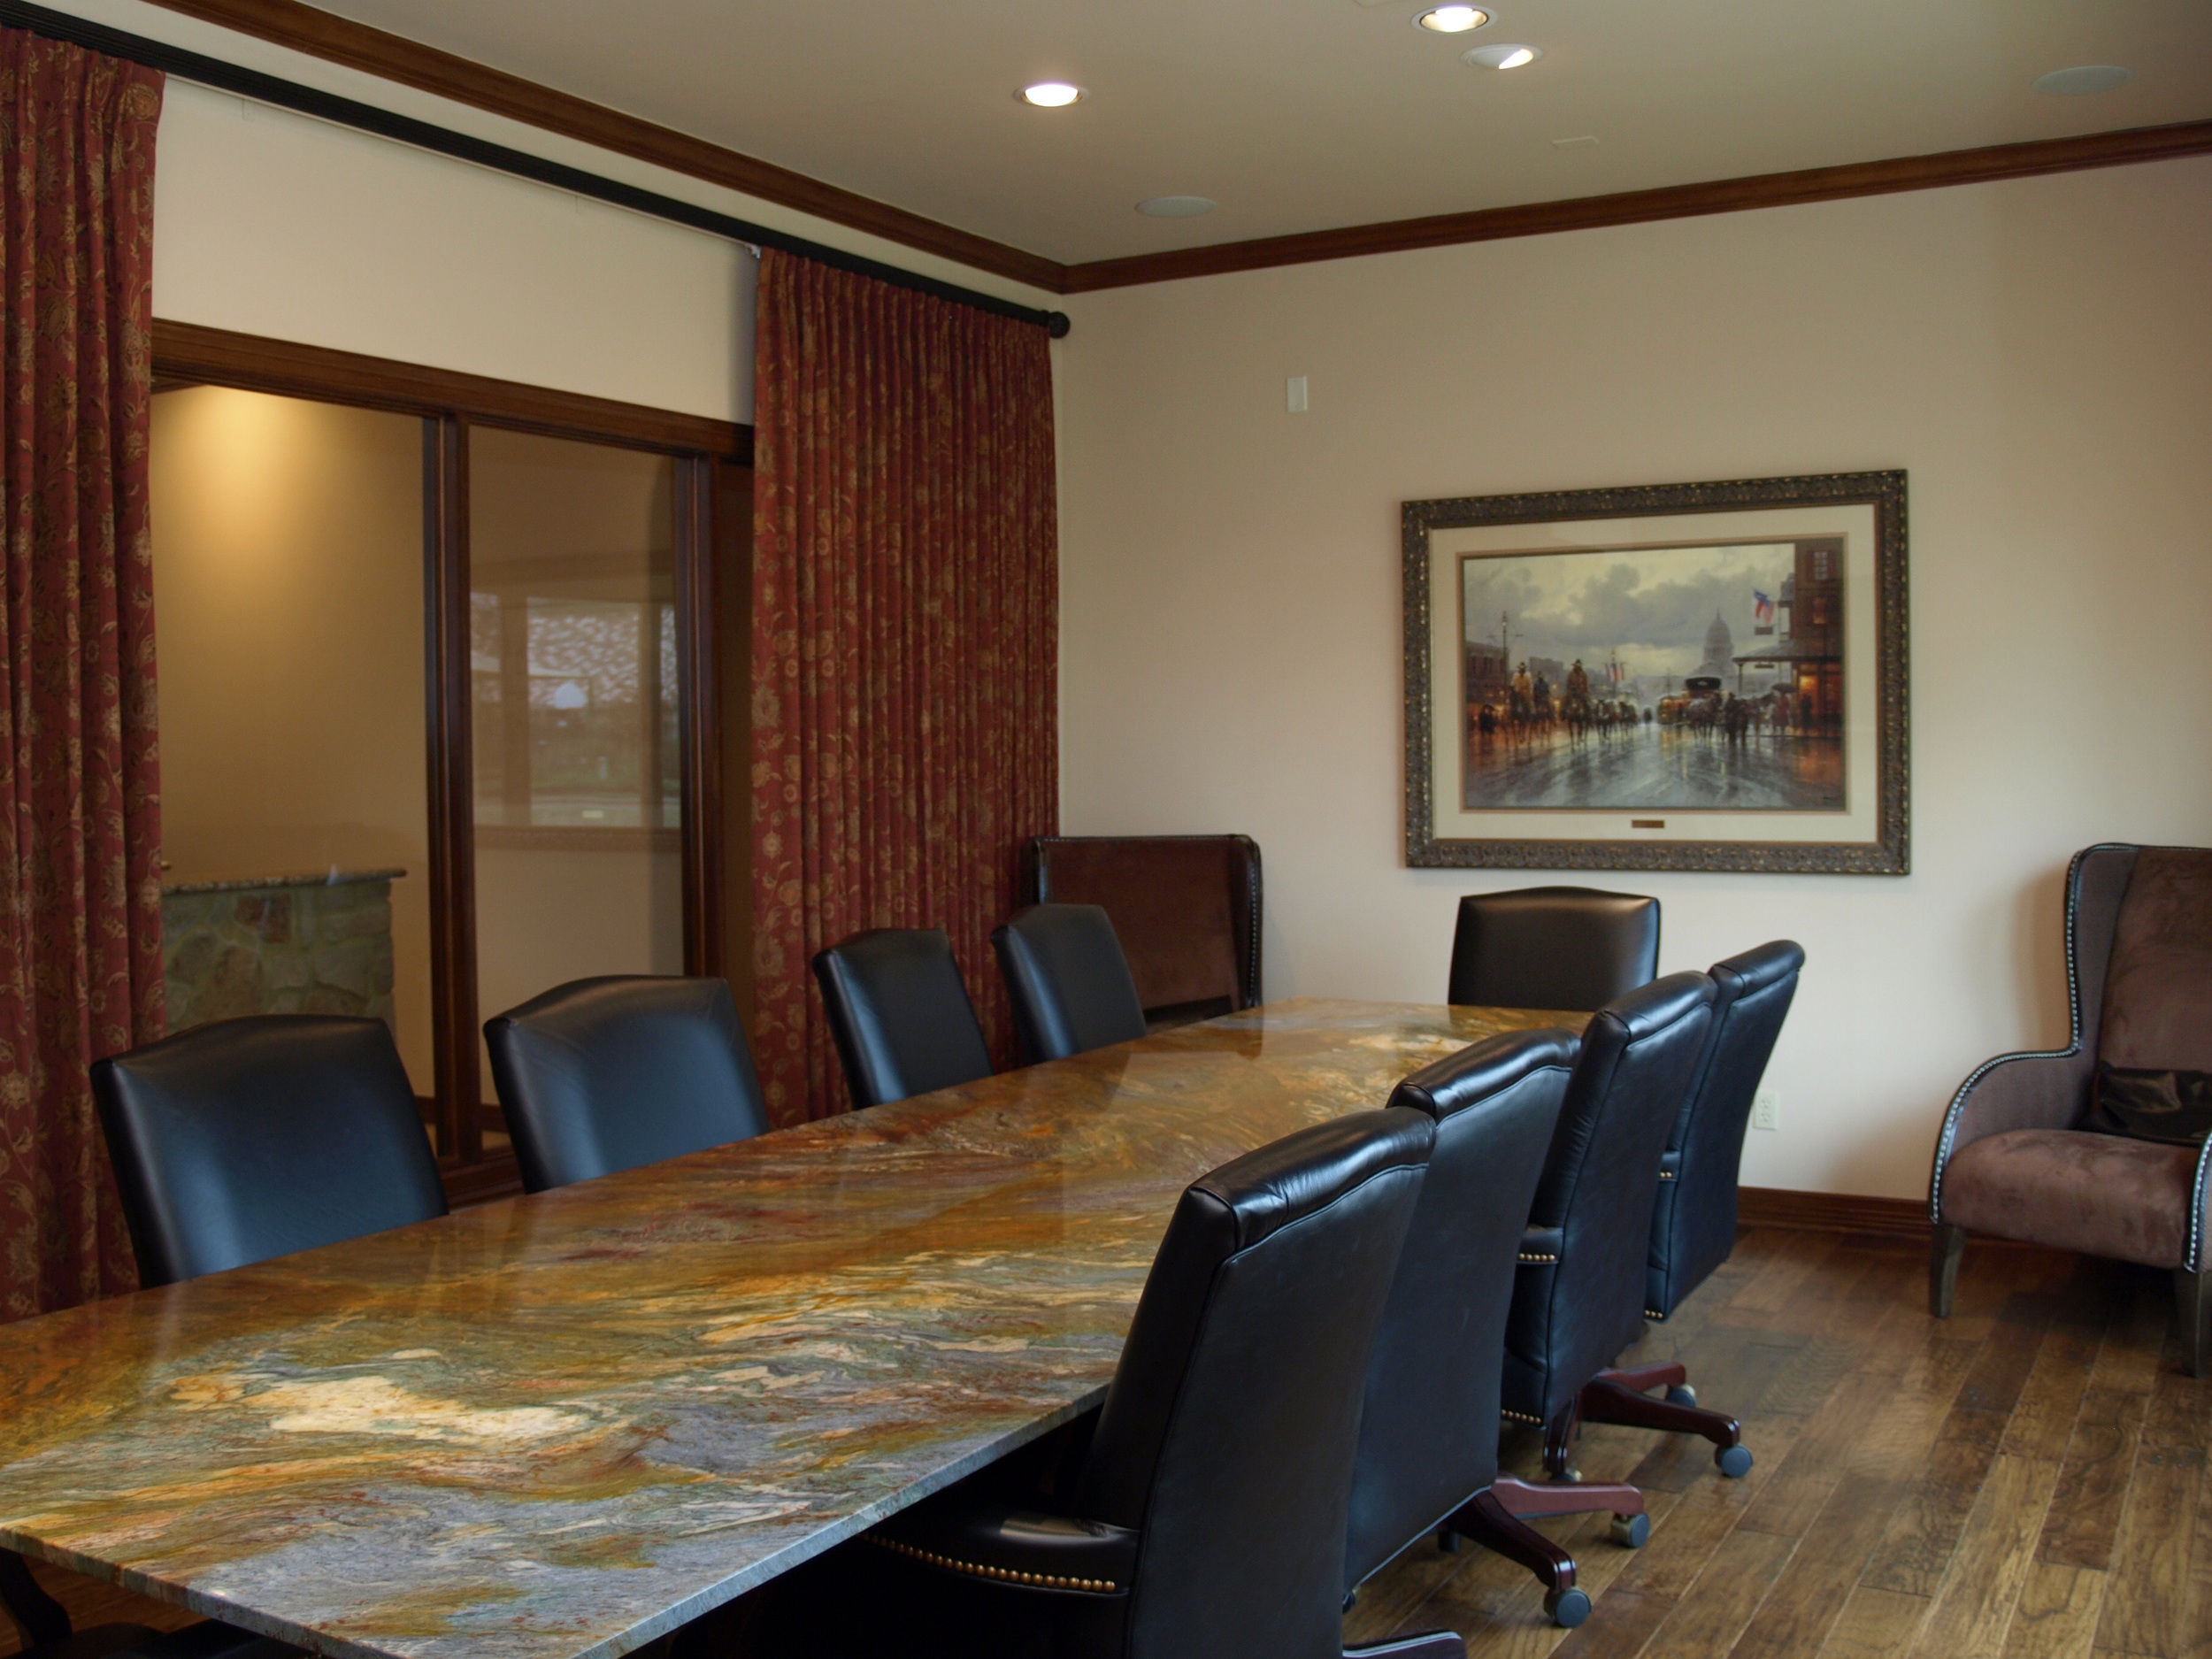 2nd Meeting Room.JPG